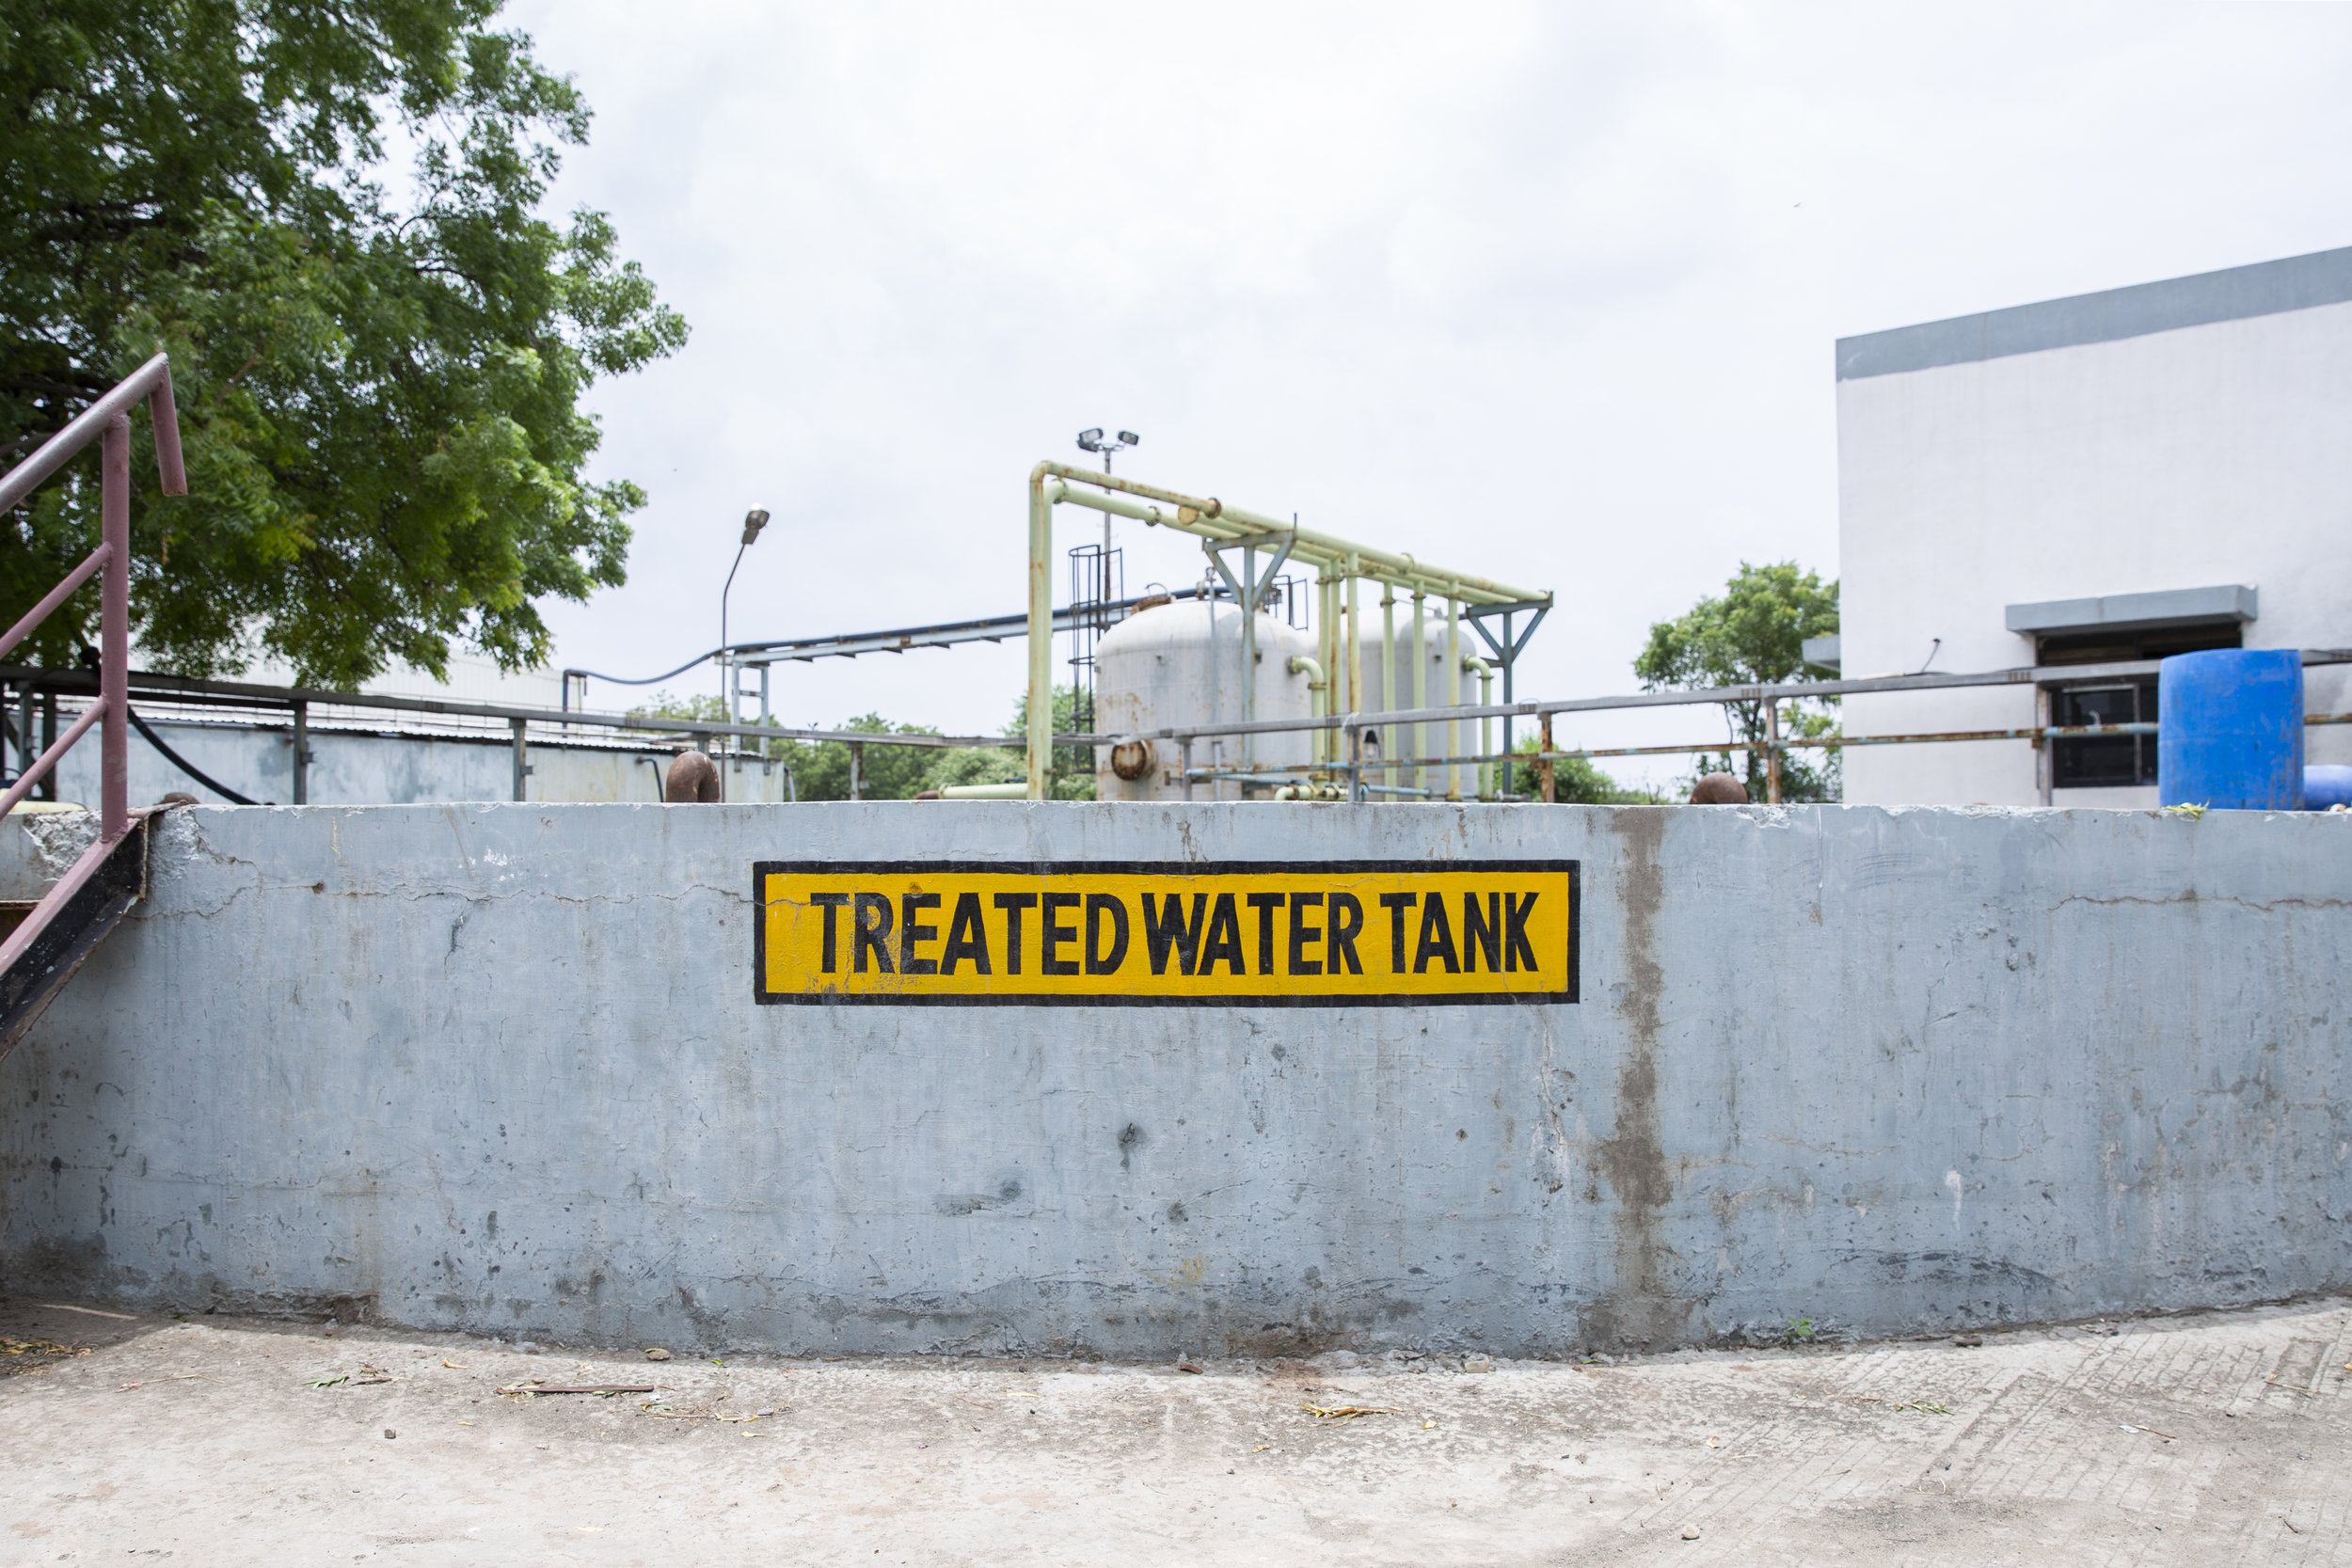 K23A0767-treatedwatertank-web.jpg